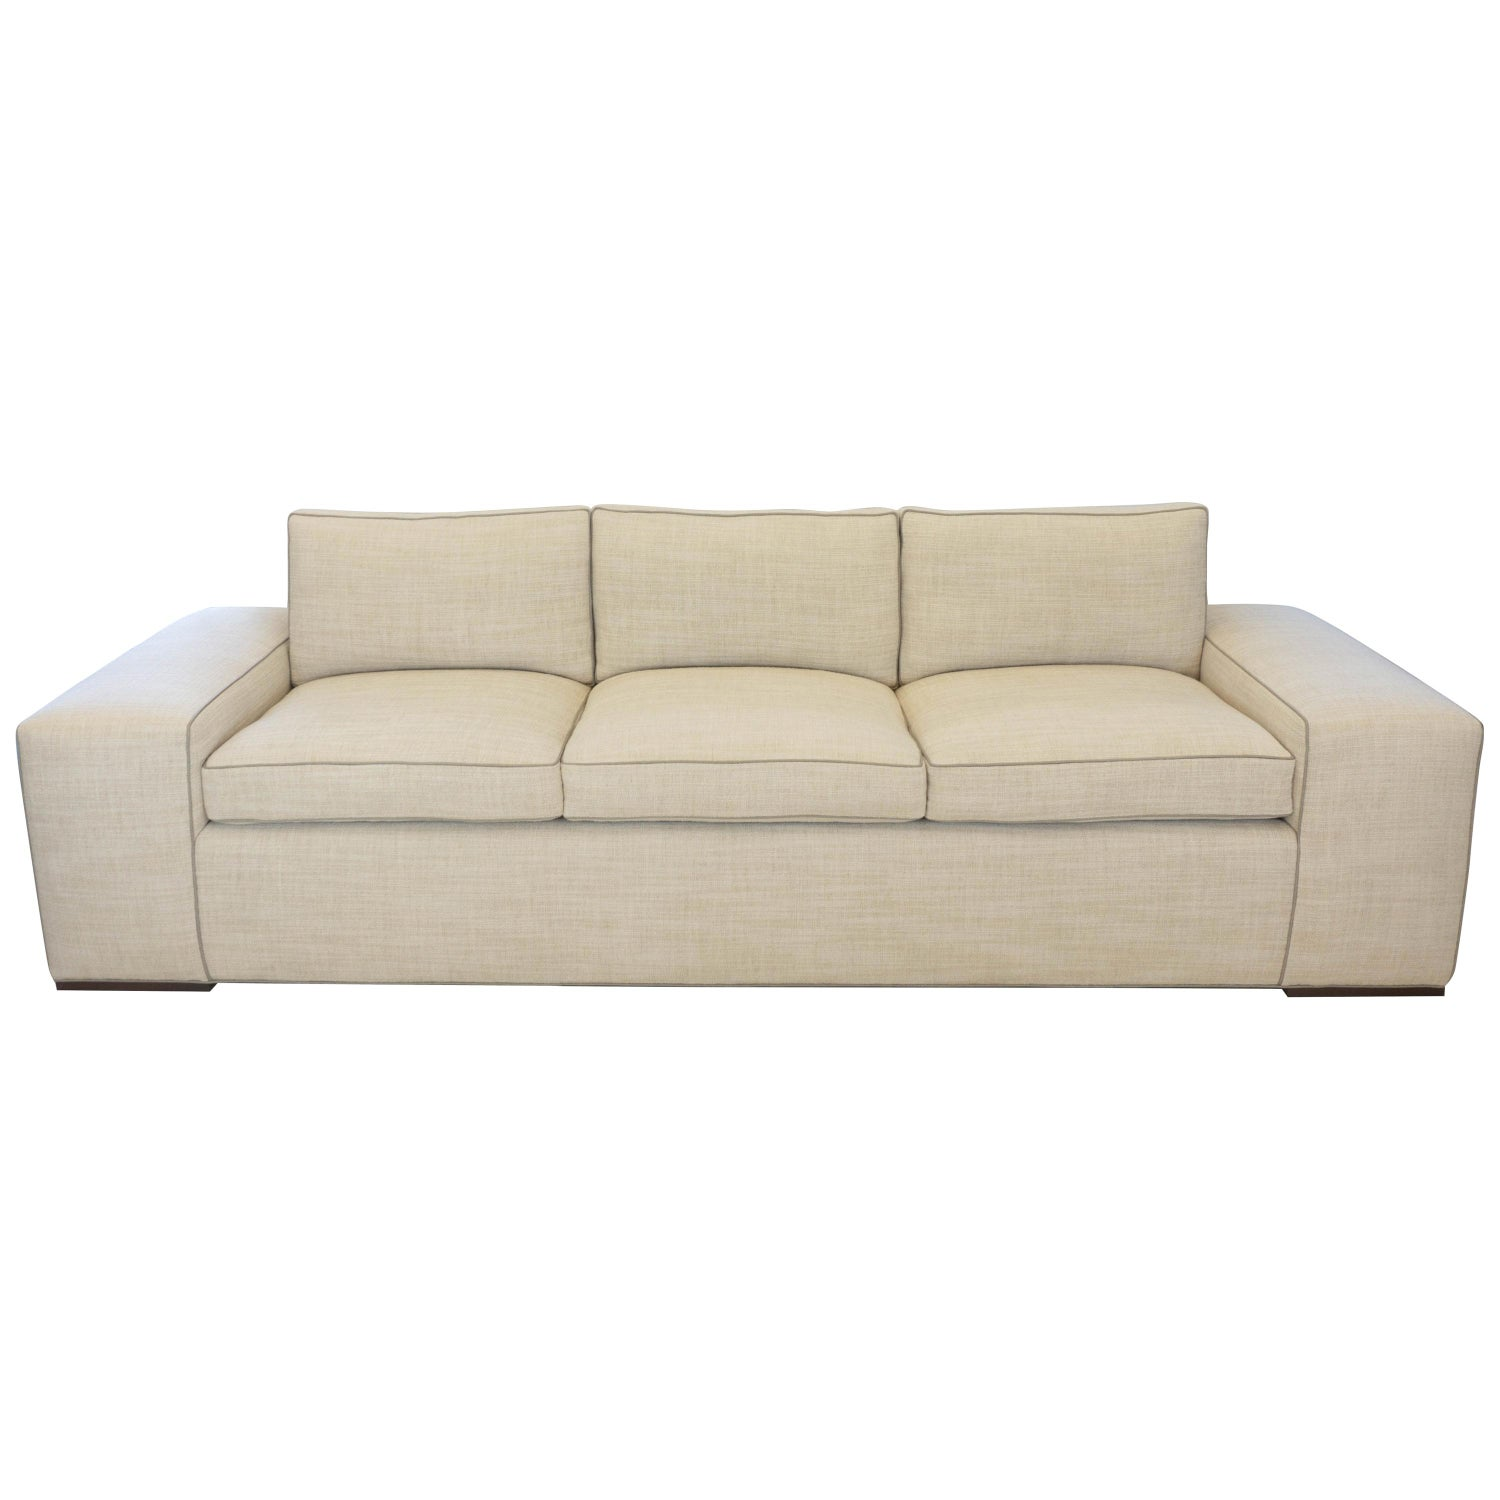 Contemporary Square Arm Sofa With Loose Cushions For Sale At 1stdibs